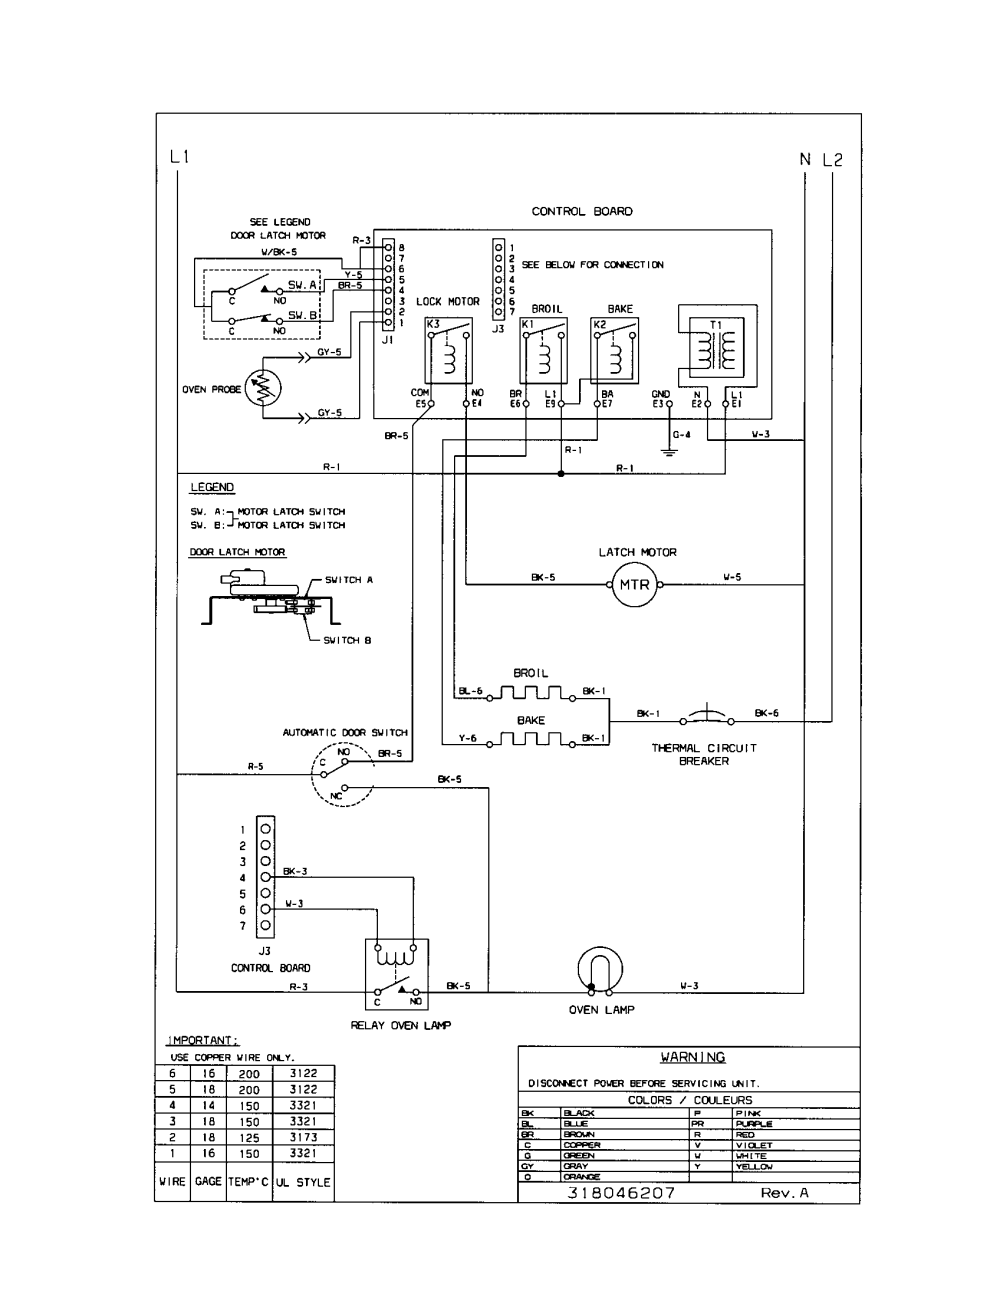 medium resolution of wiring diagram for frigidaire wall oven data schematic diagram wiring diagram for frigidaire wall oven